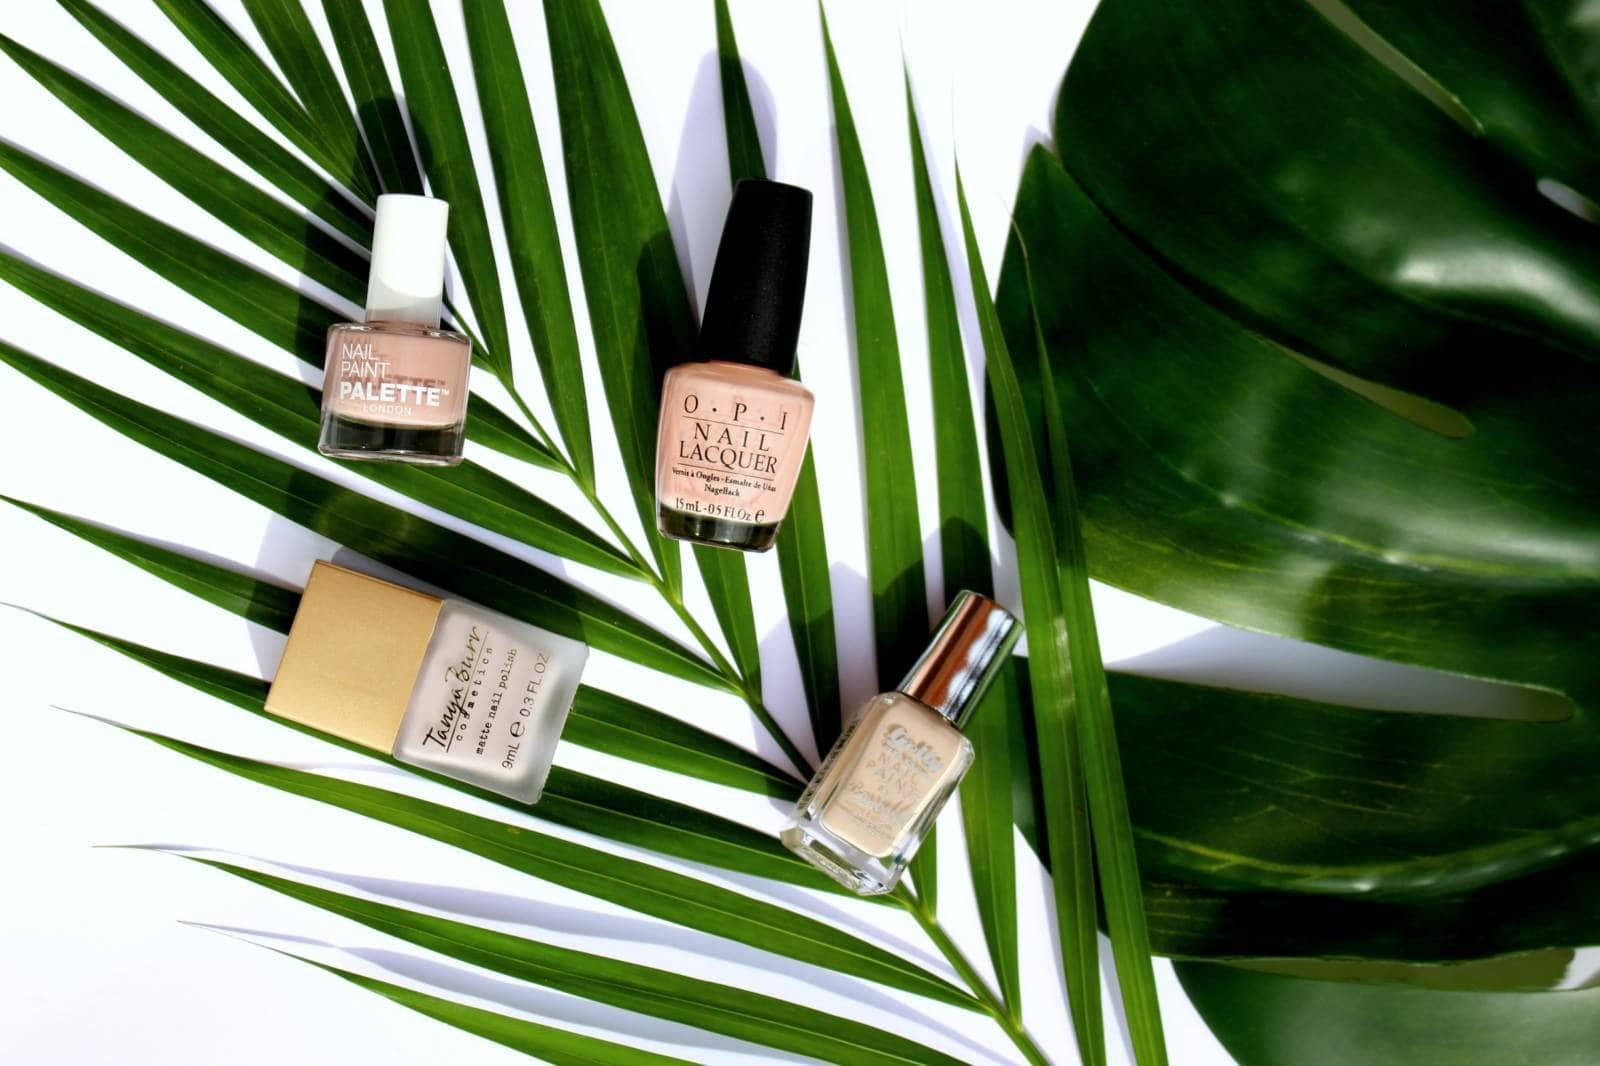 4 Nude Nail Polishes To Try This Season